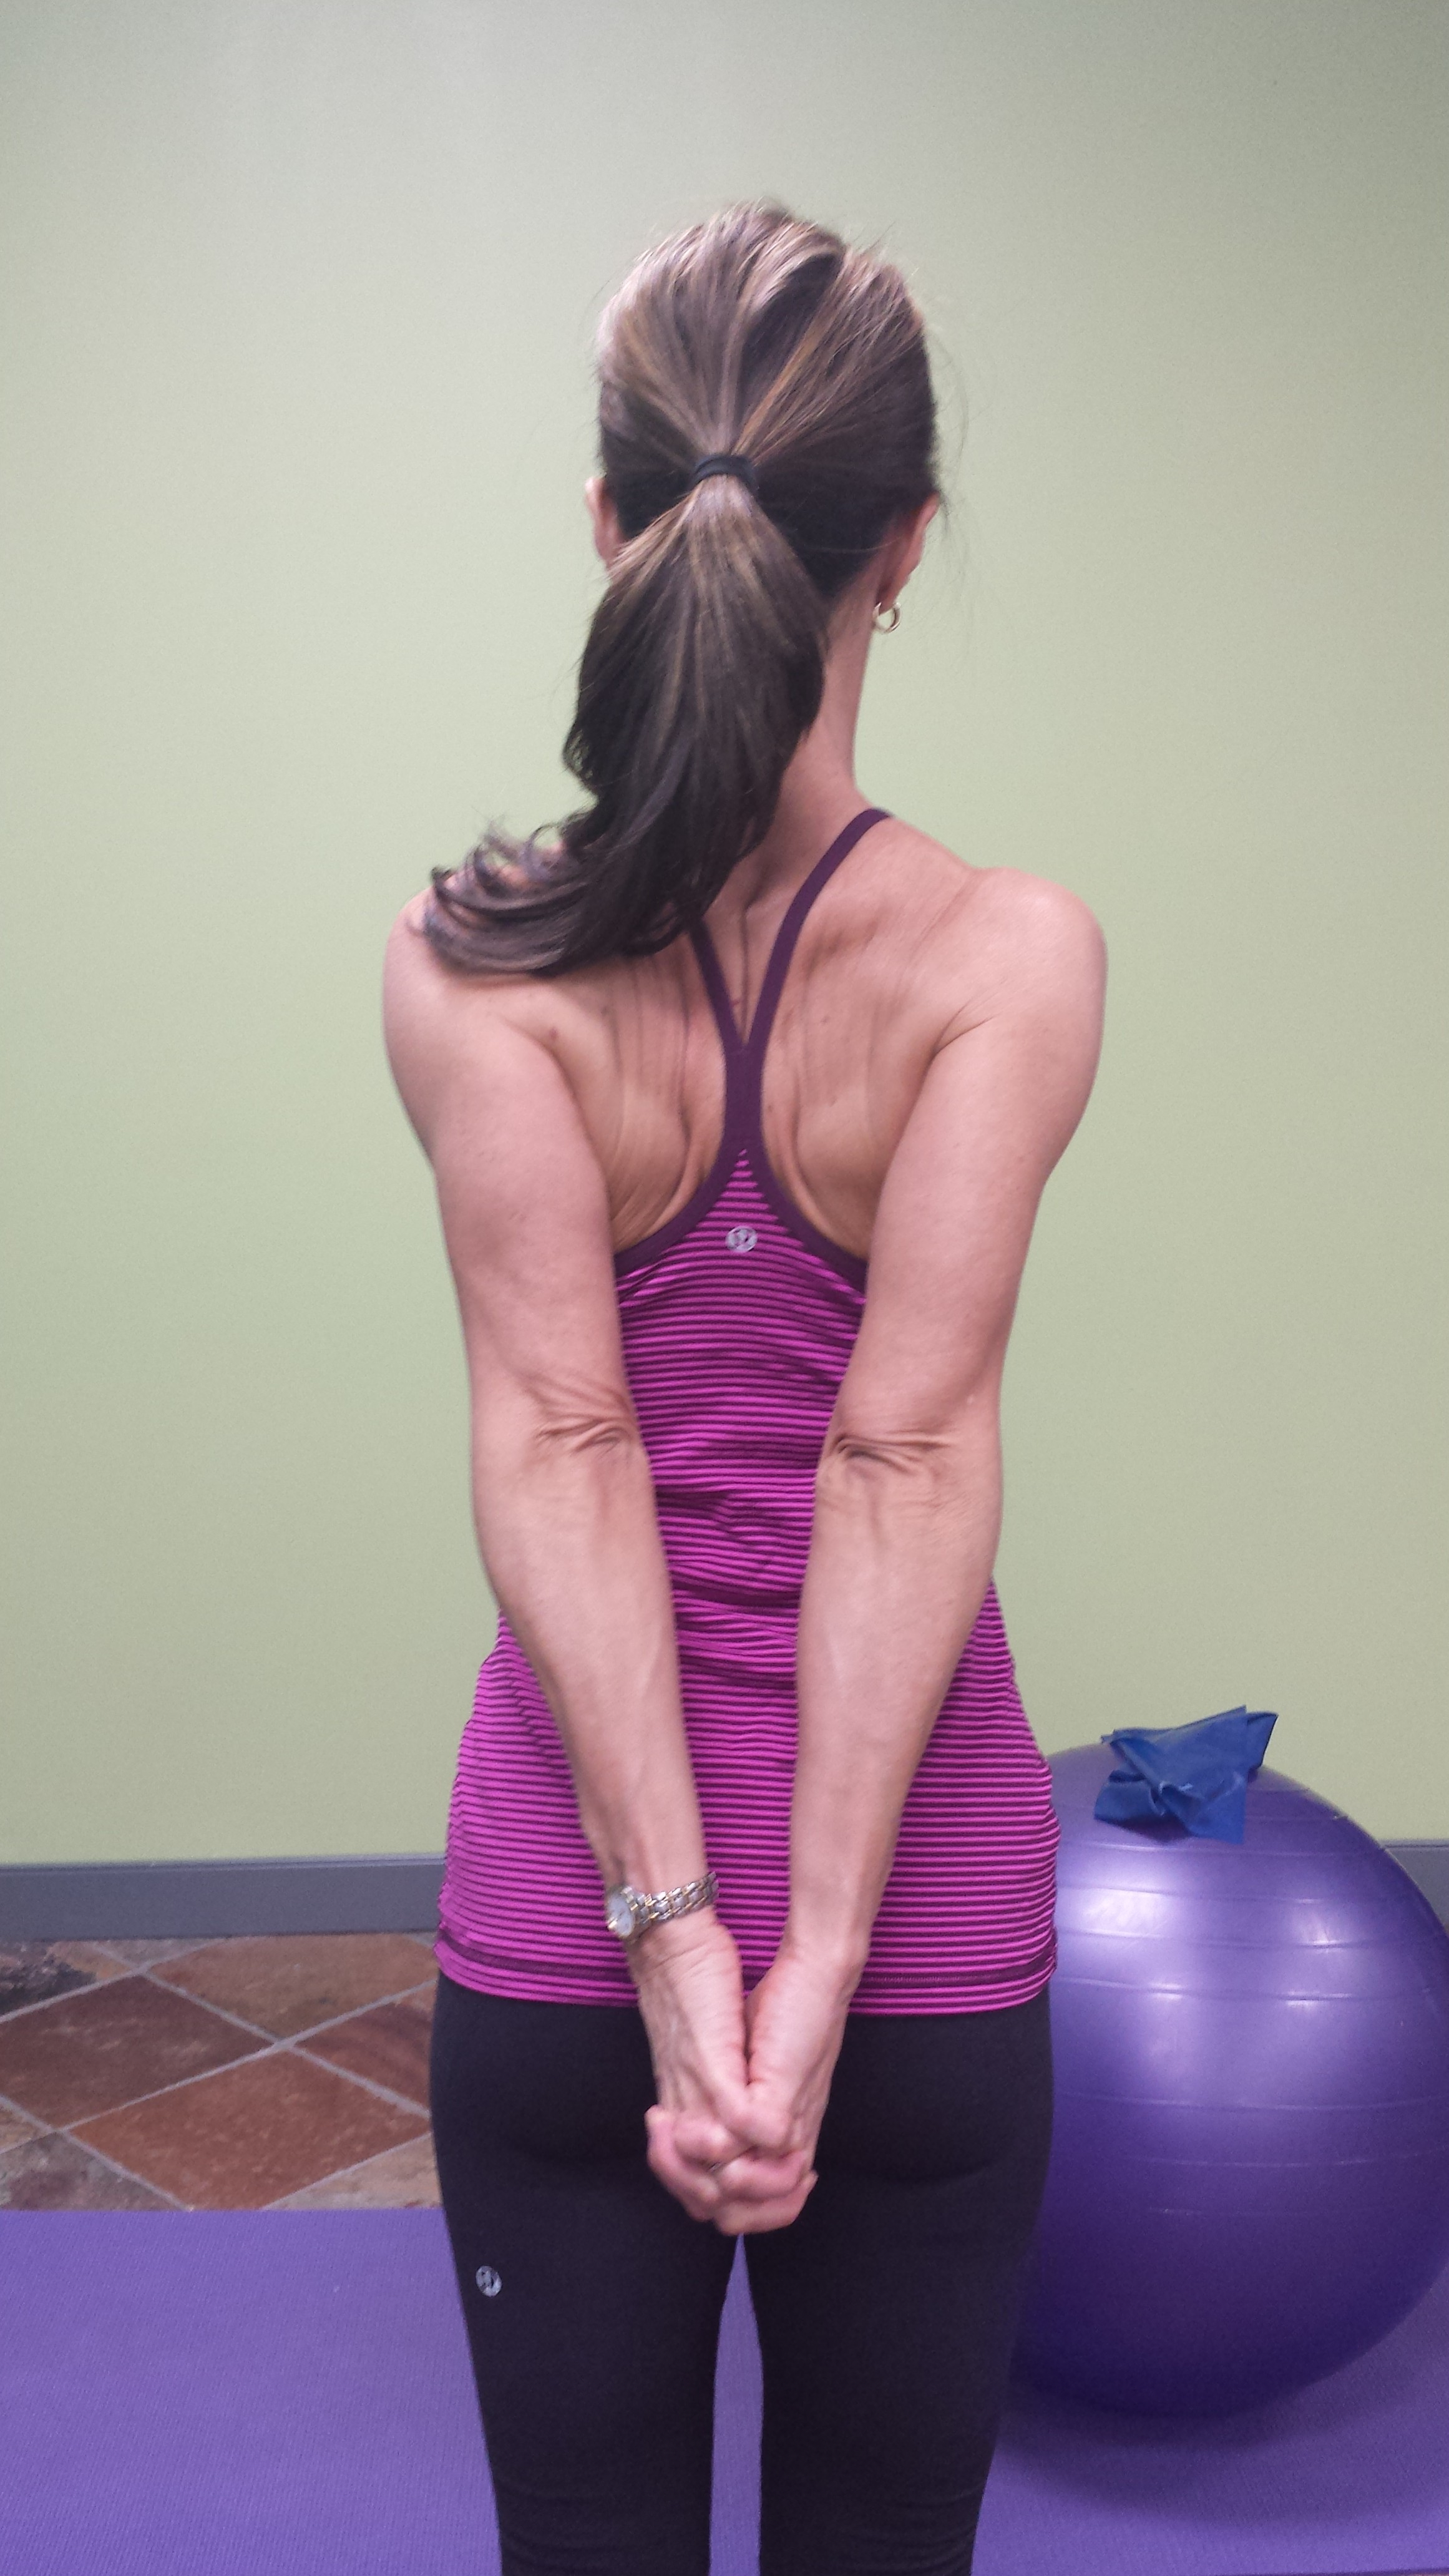 Denise demonstrating a shoulder range of motion technique, arms straight, hands clasped behind her back. This is the view from behind.